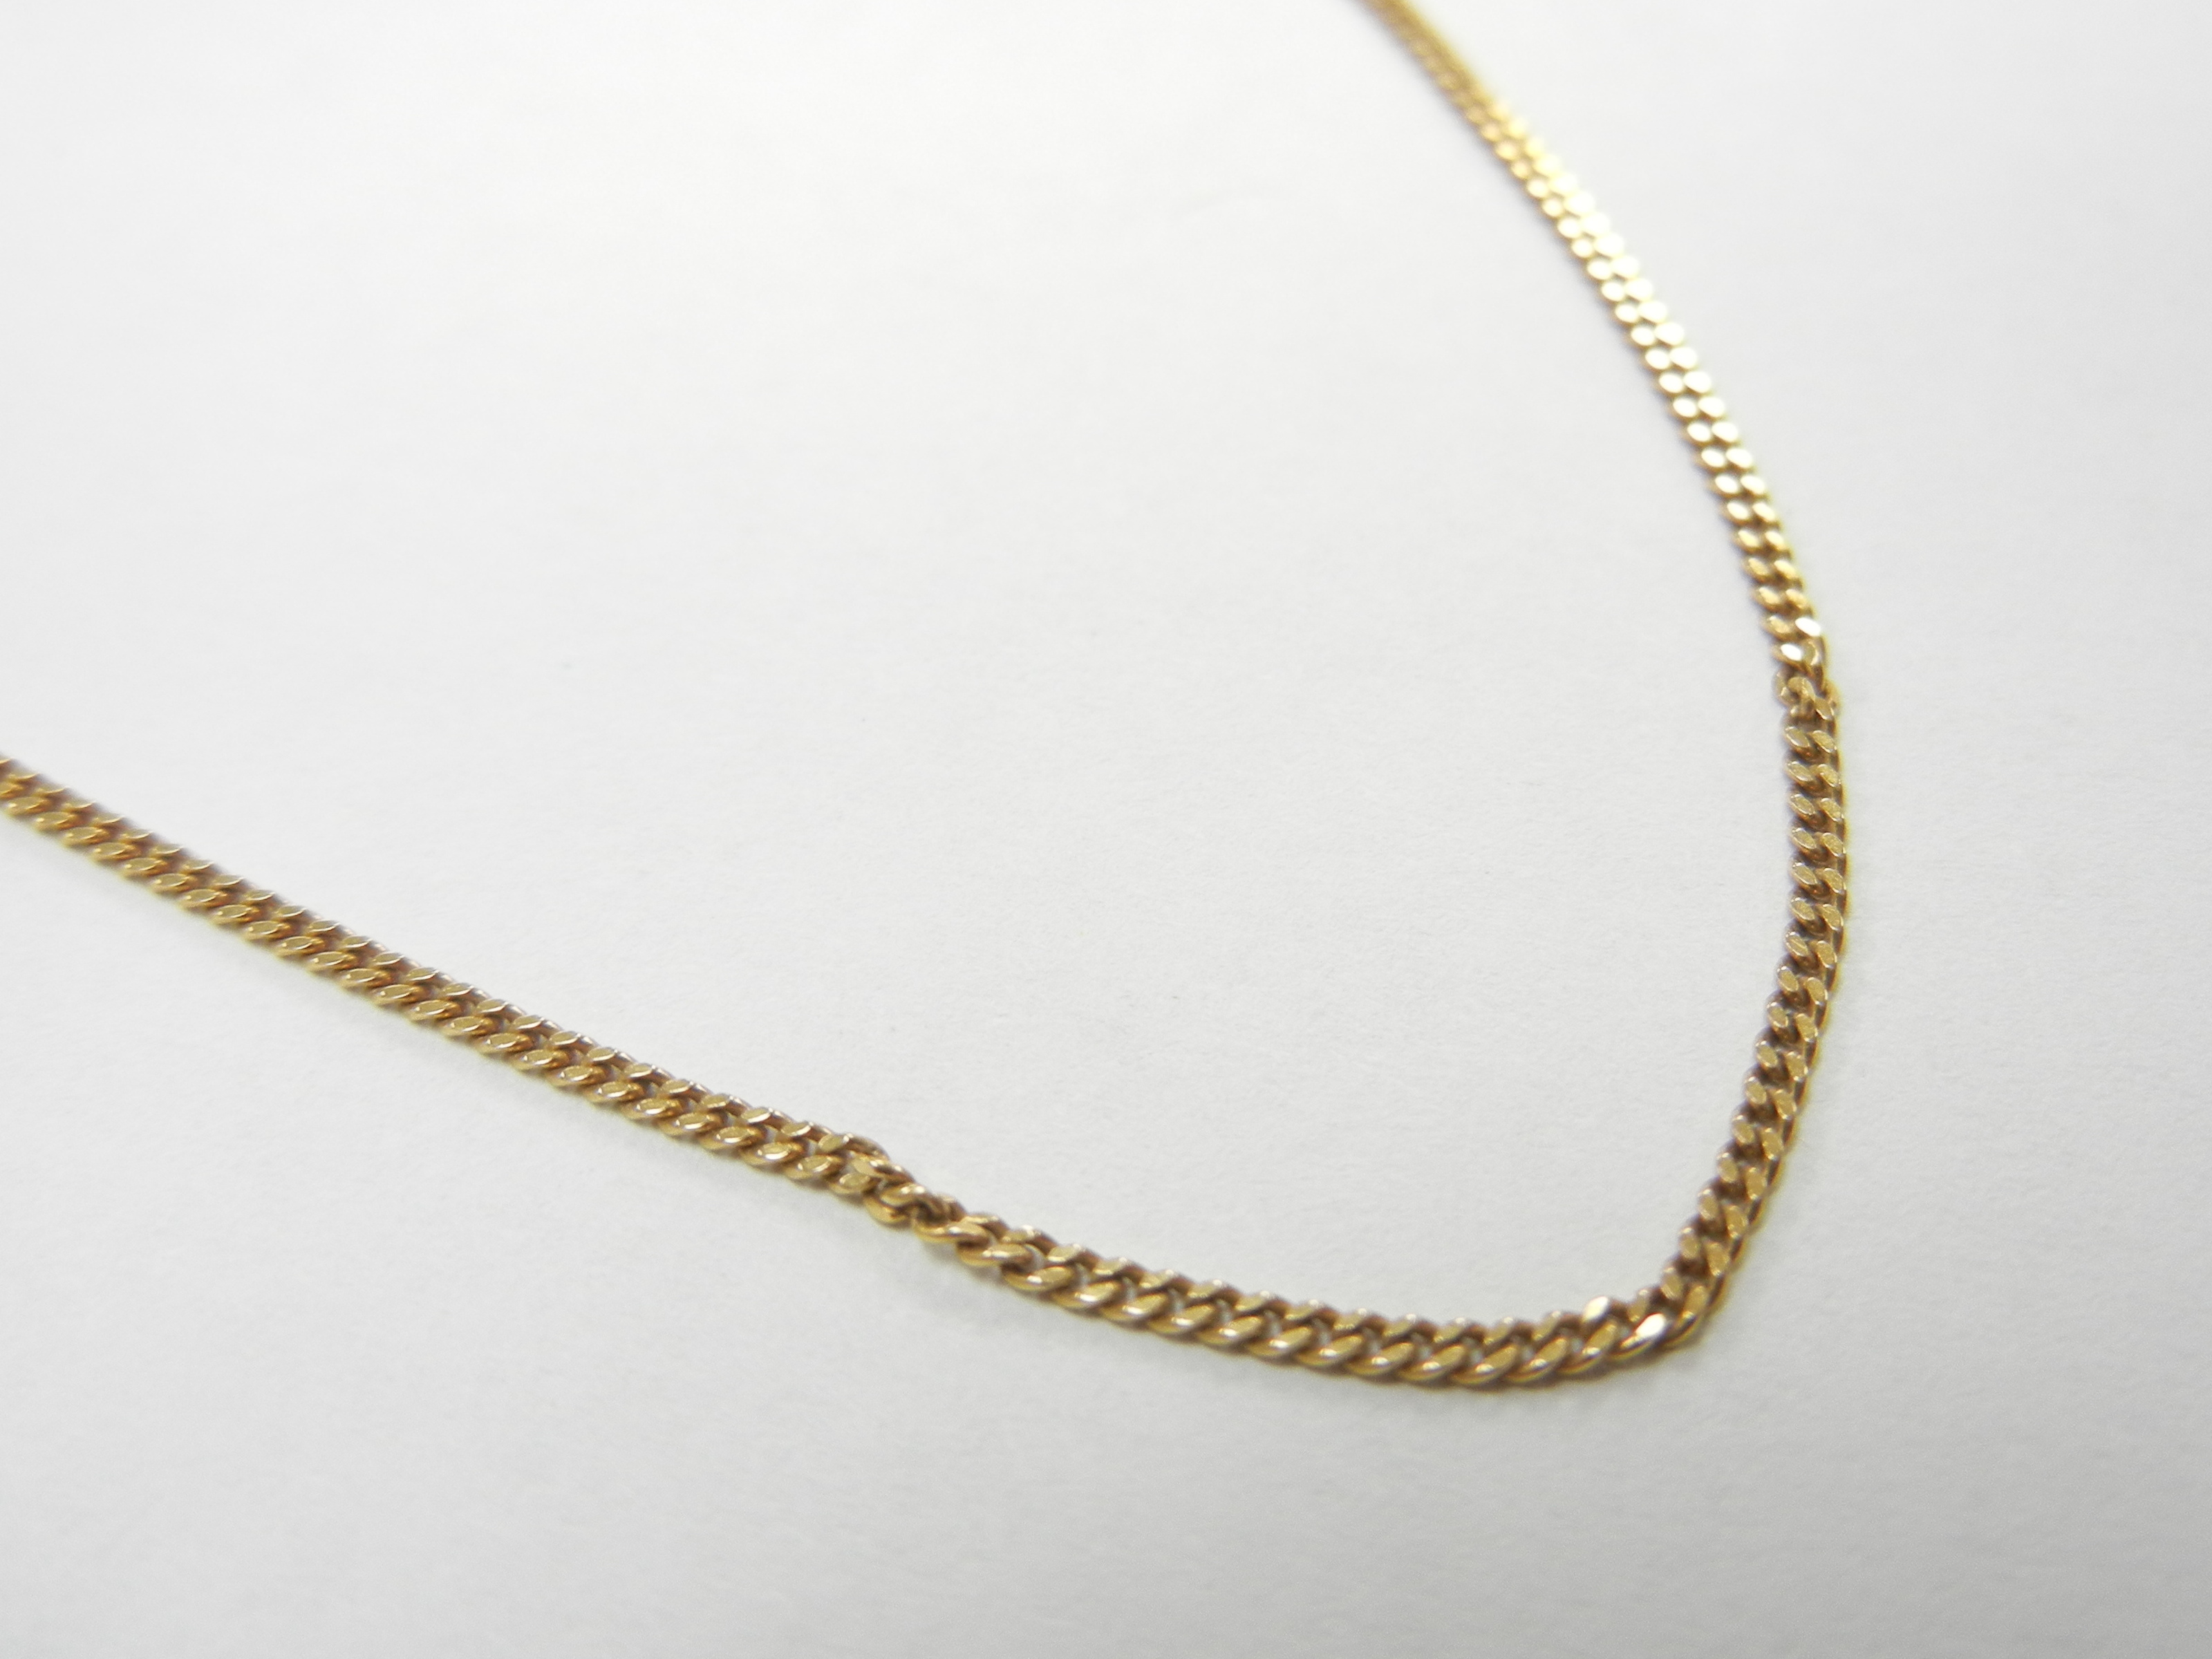 18 KT YELLOW GOLD THIN MIAMI CURB LINK 16